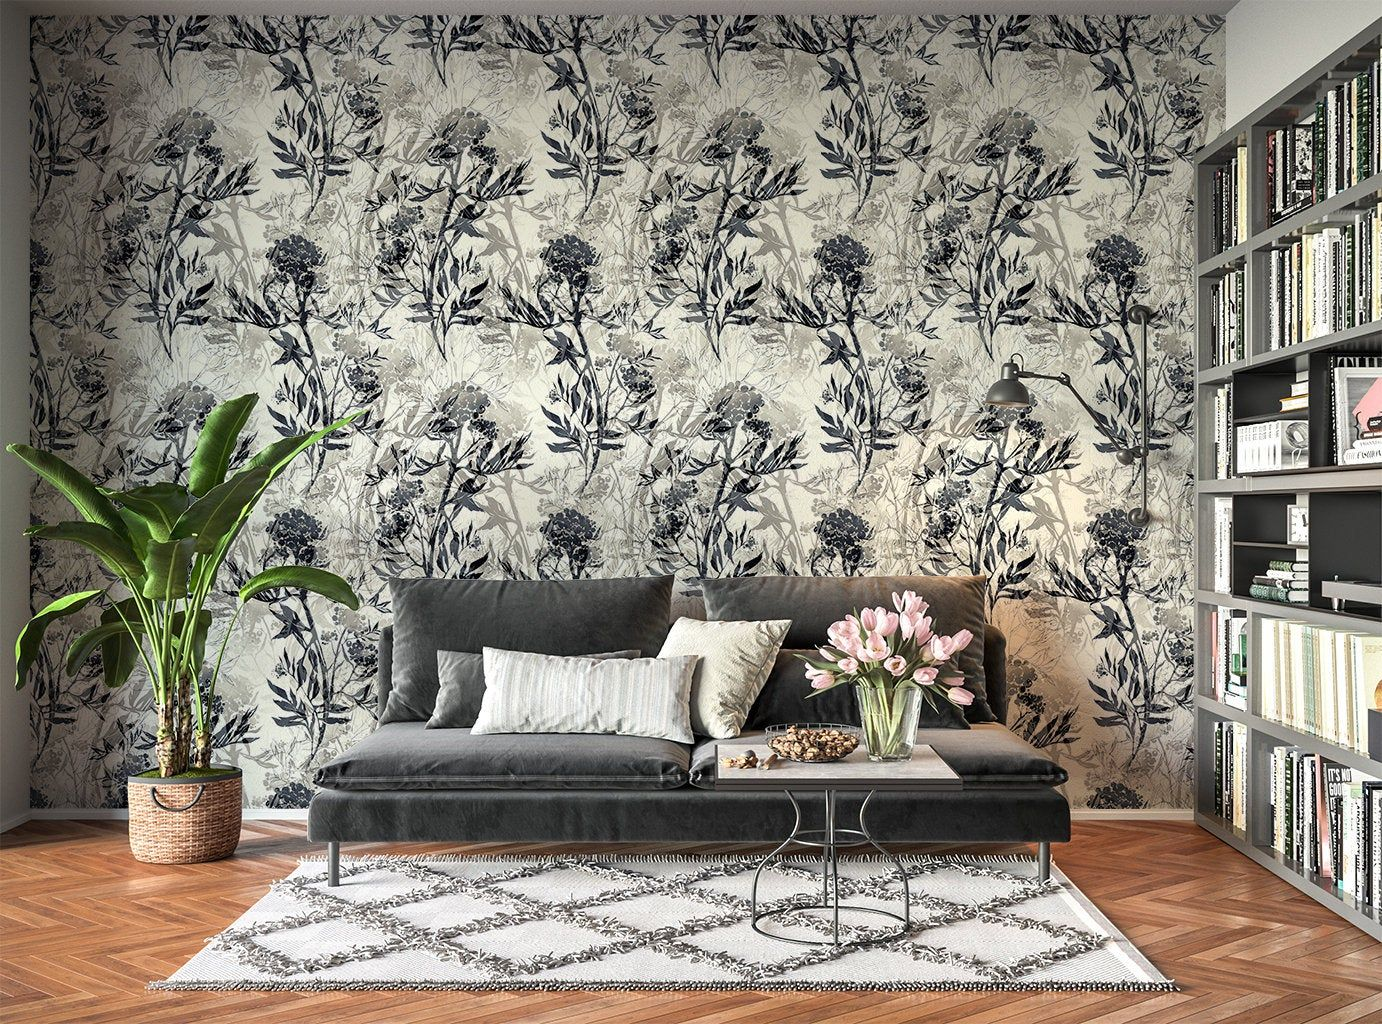 Removable Peel And Stick Wallpaper Neutral Beige Gray Floral Leaves Wallpaper In 2020 Peel And Stick Wallpaper Leaf Wallpaper Vinyl Wallpaper